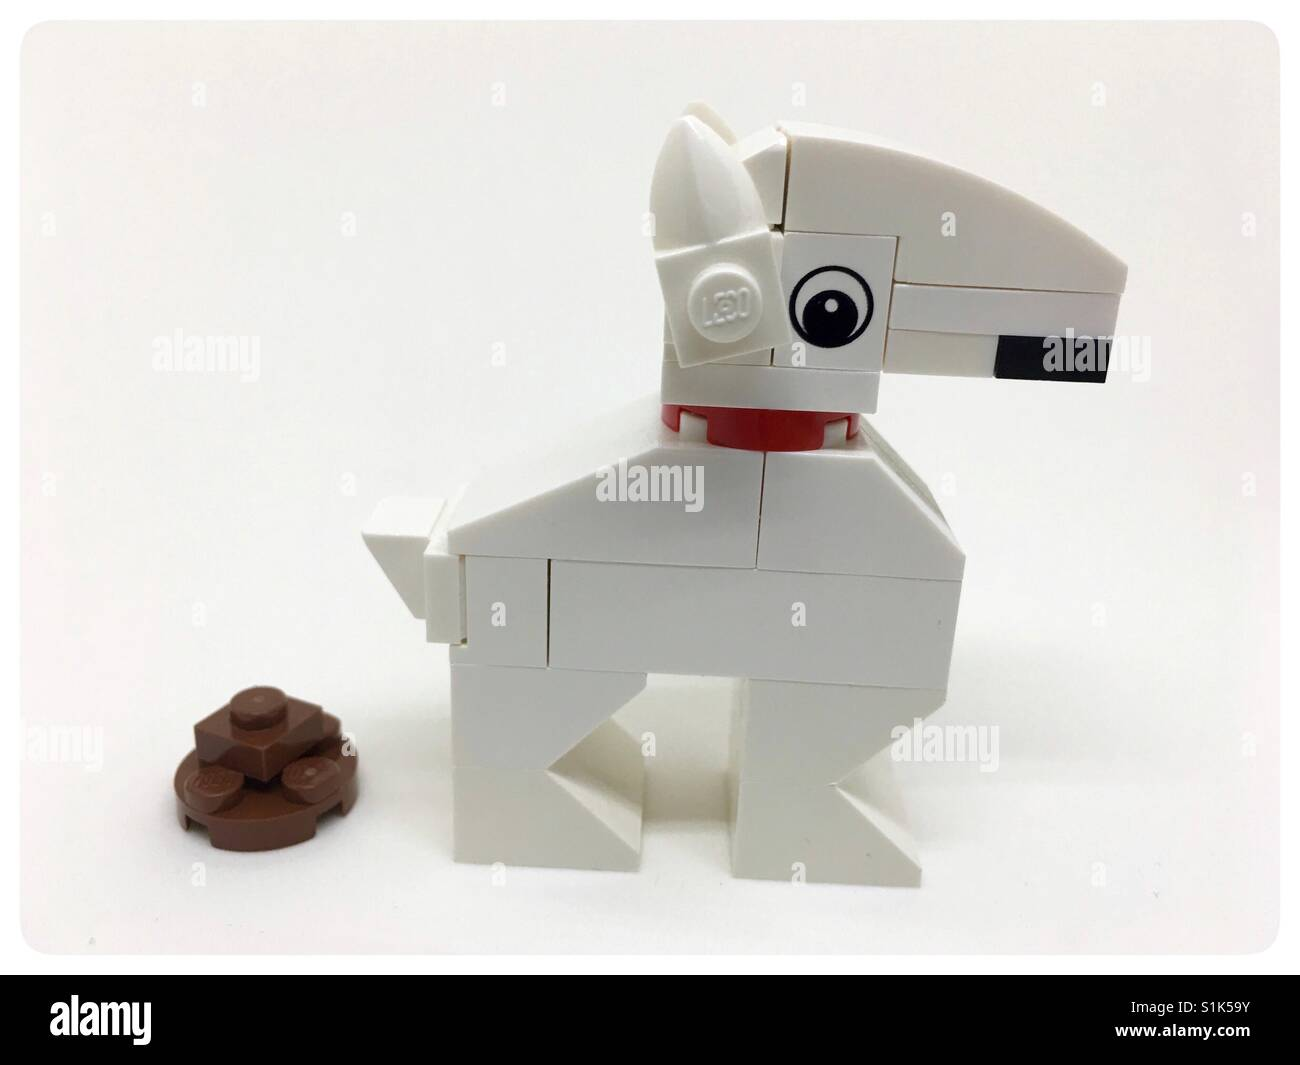 lego-bull-terrier-dog-makes-a-lego-poop-